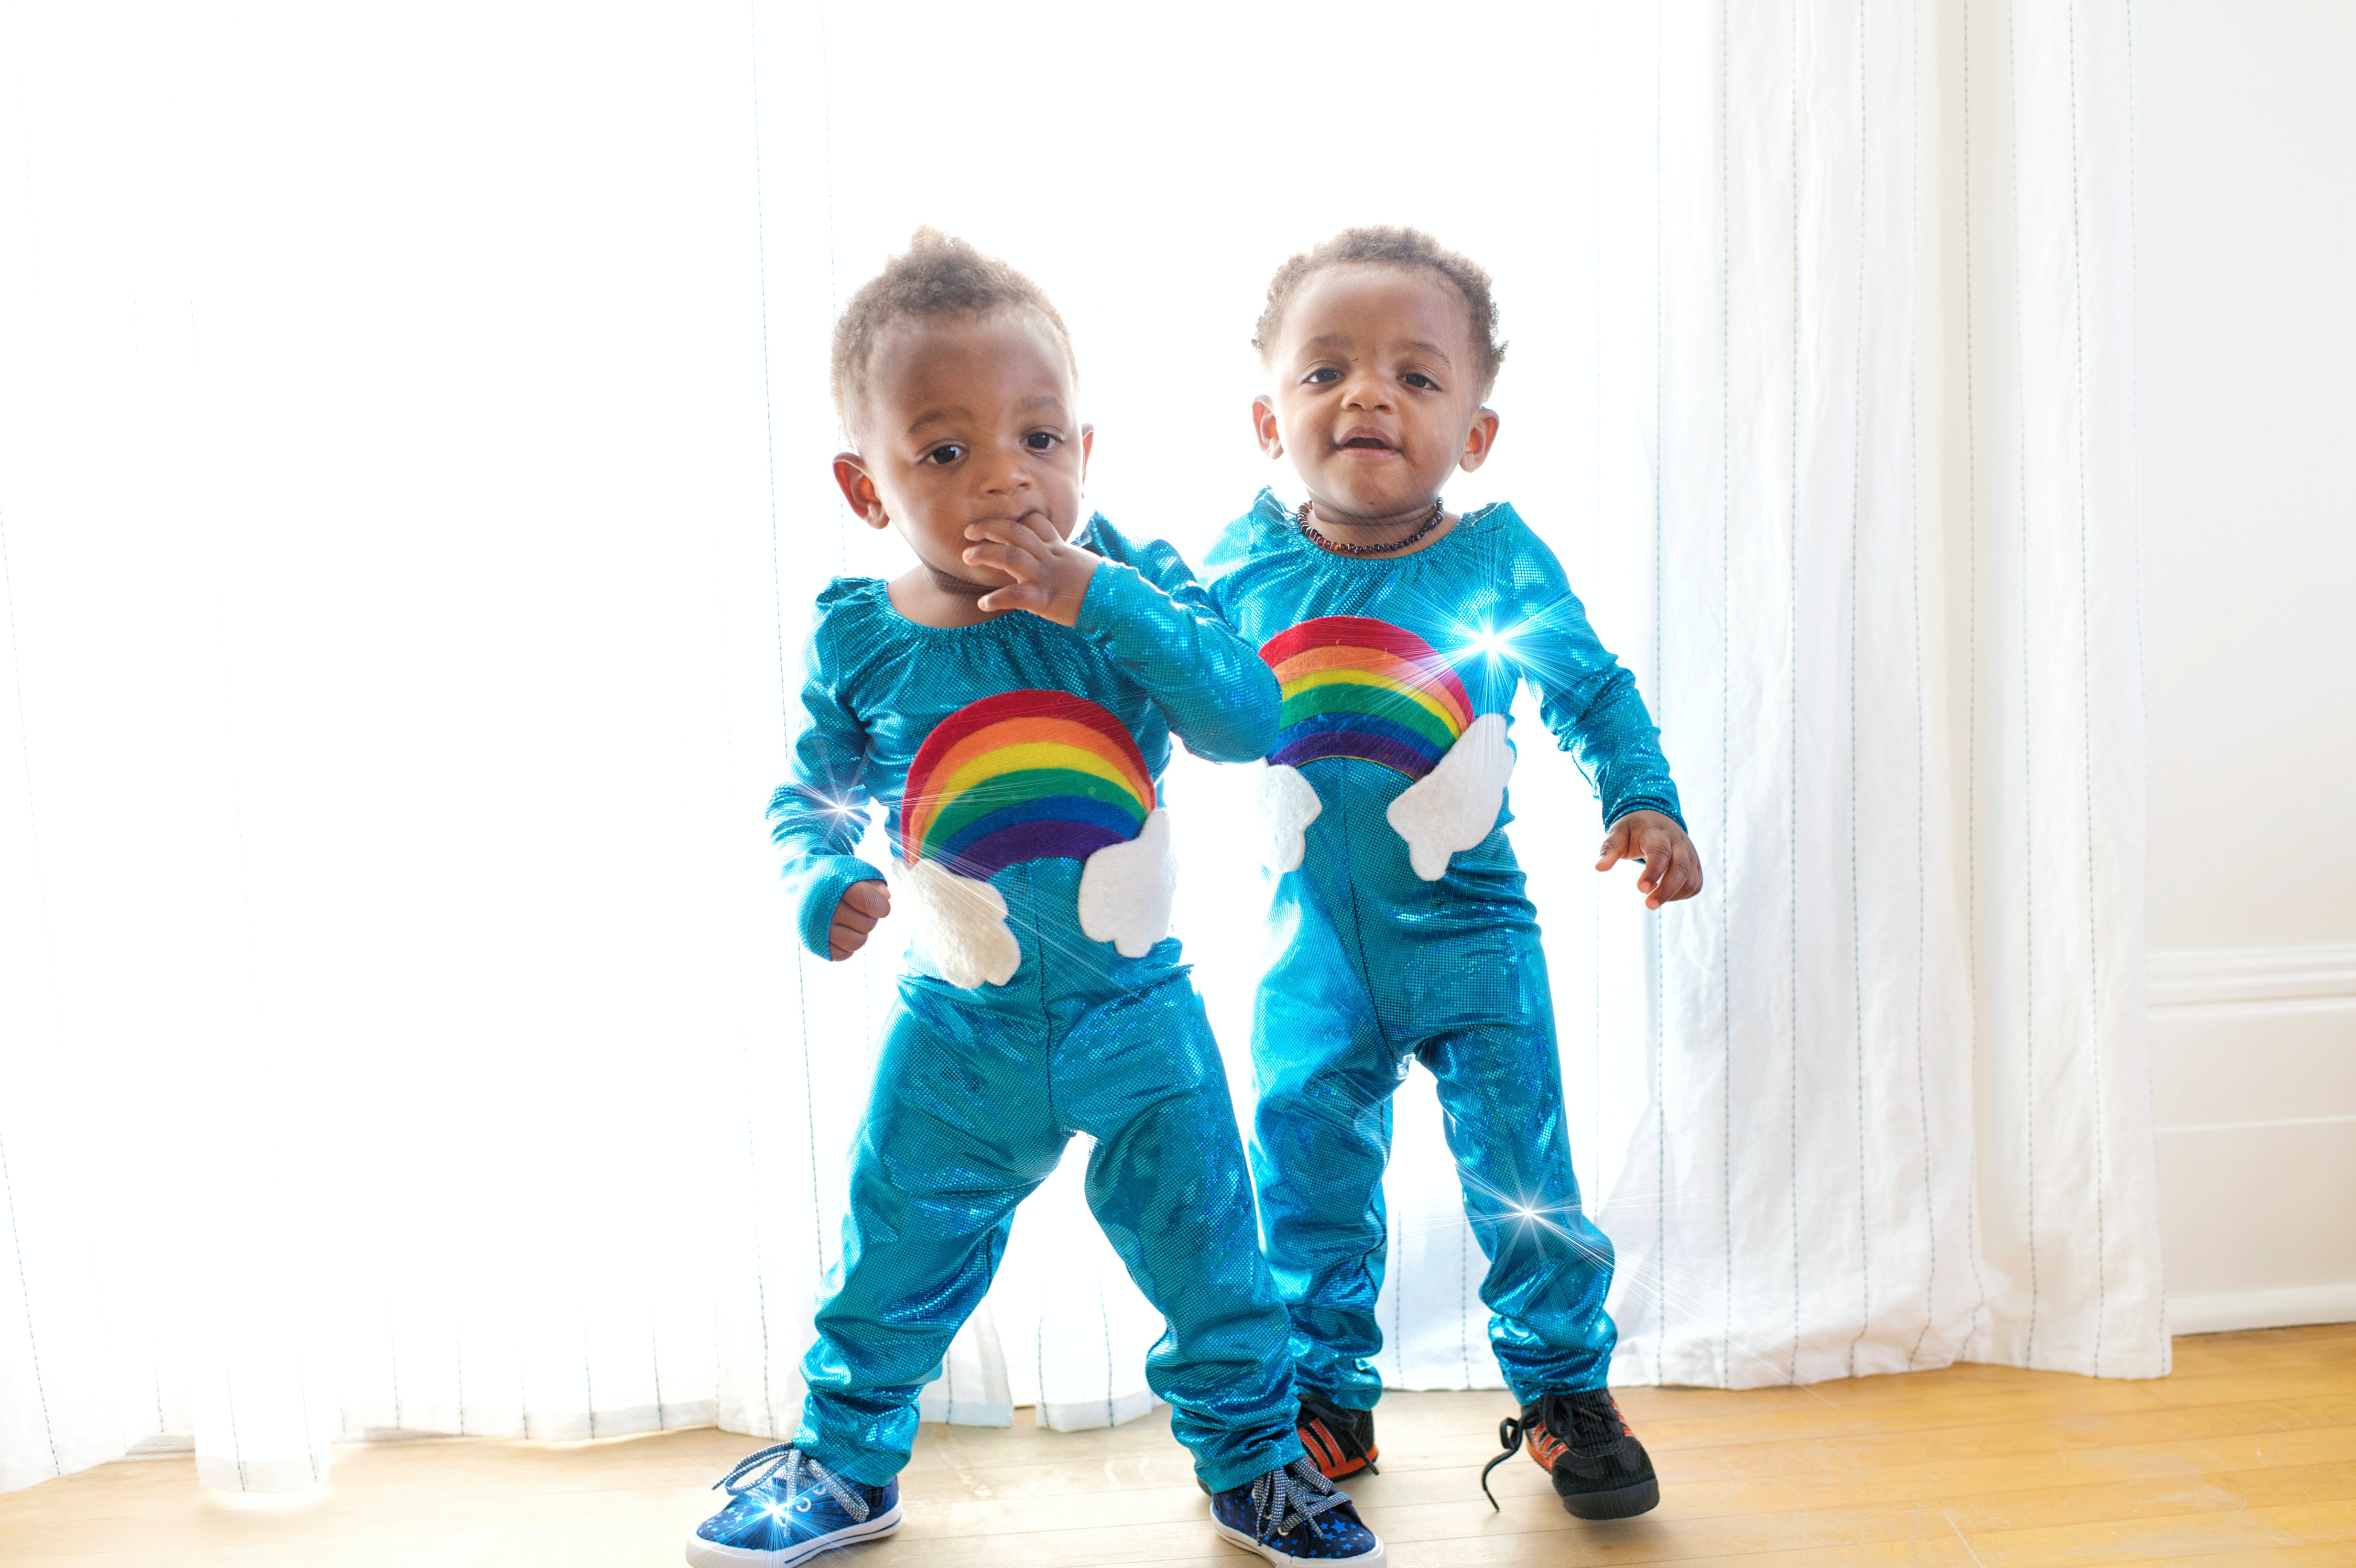 two toddler's standing in front of white window curtain